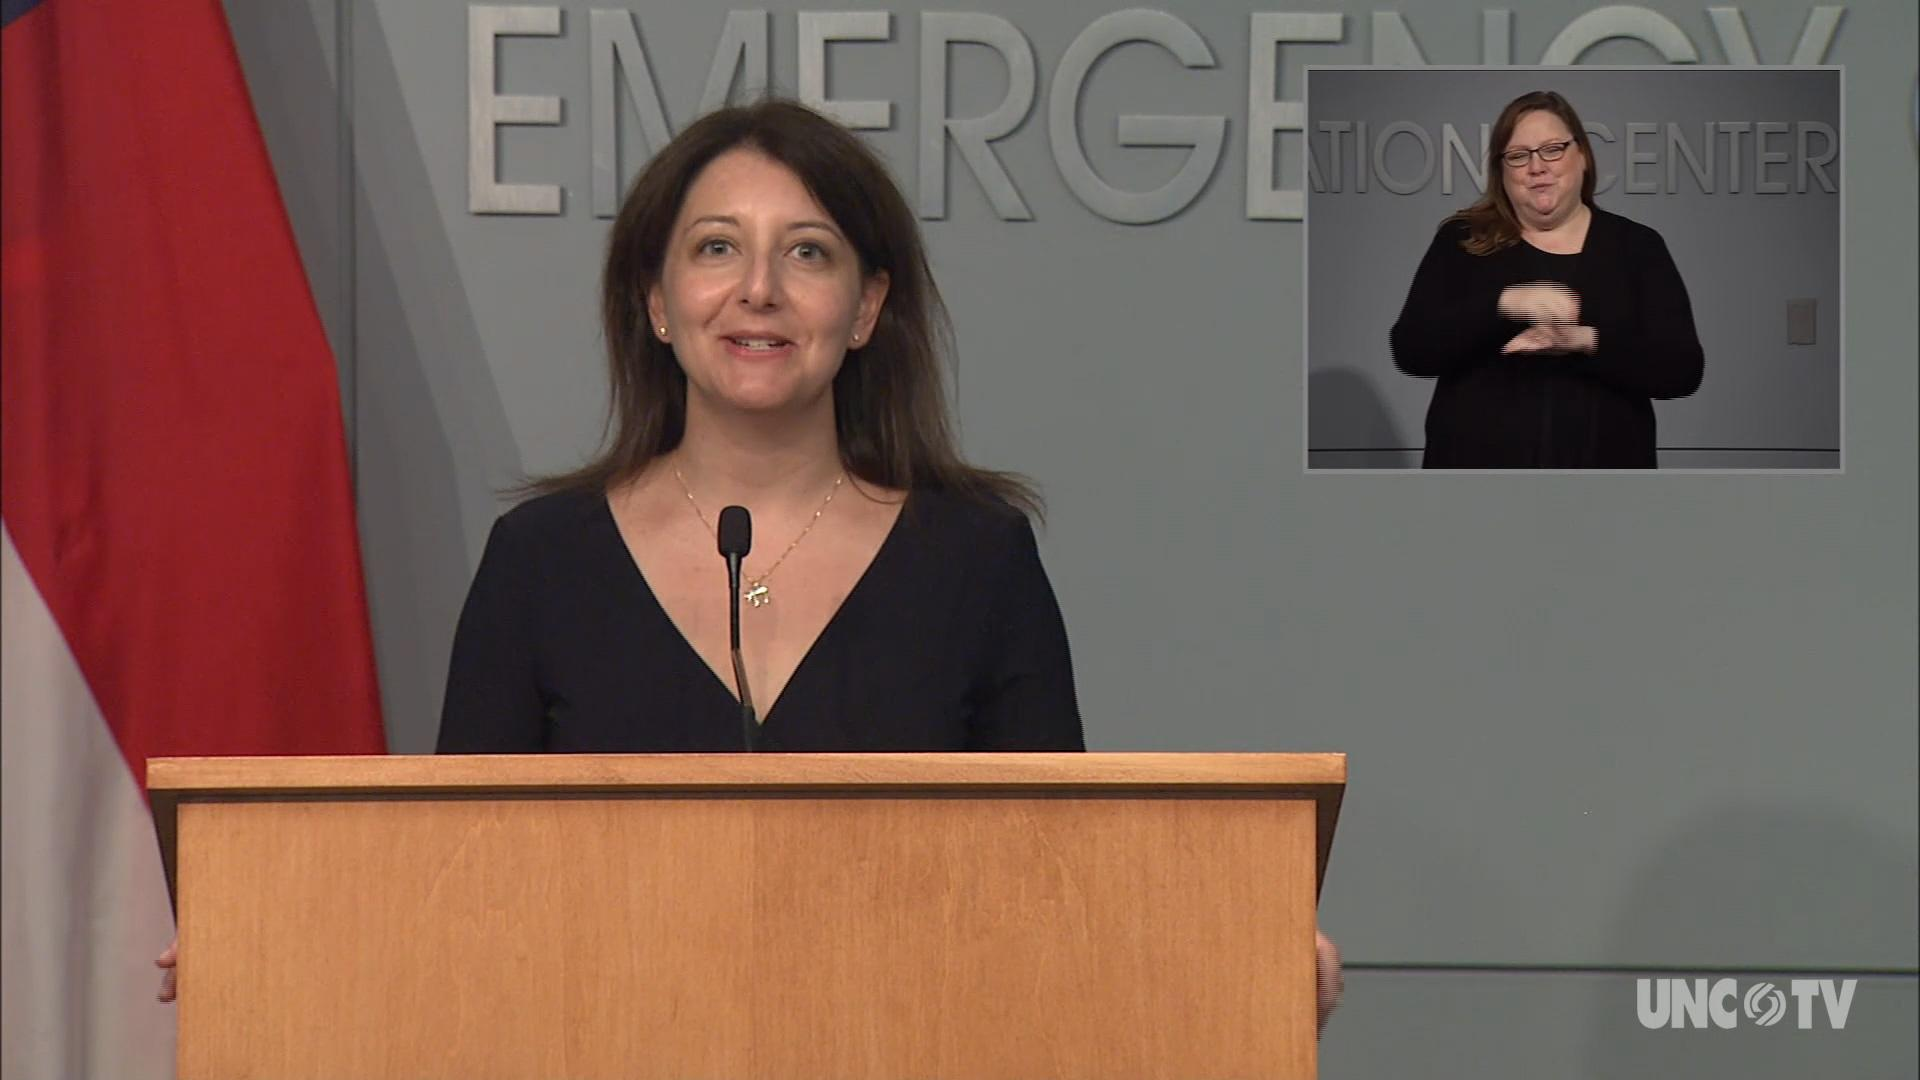 07/07/20 Dr. Mandy Cohen Briefing (Spanish)